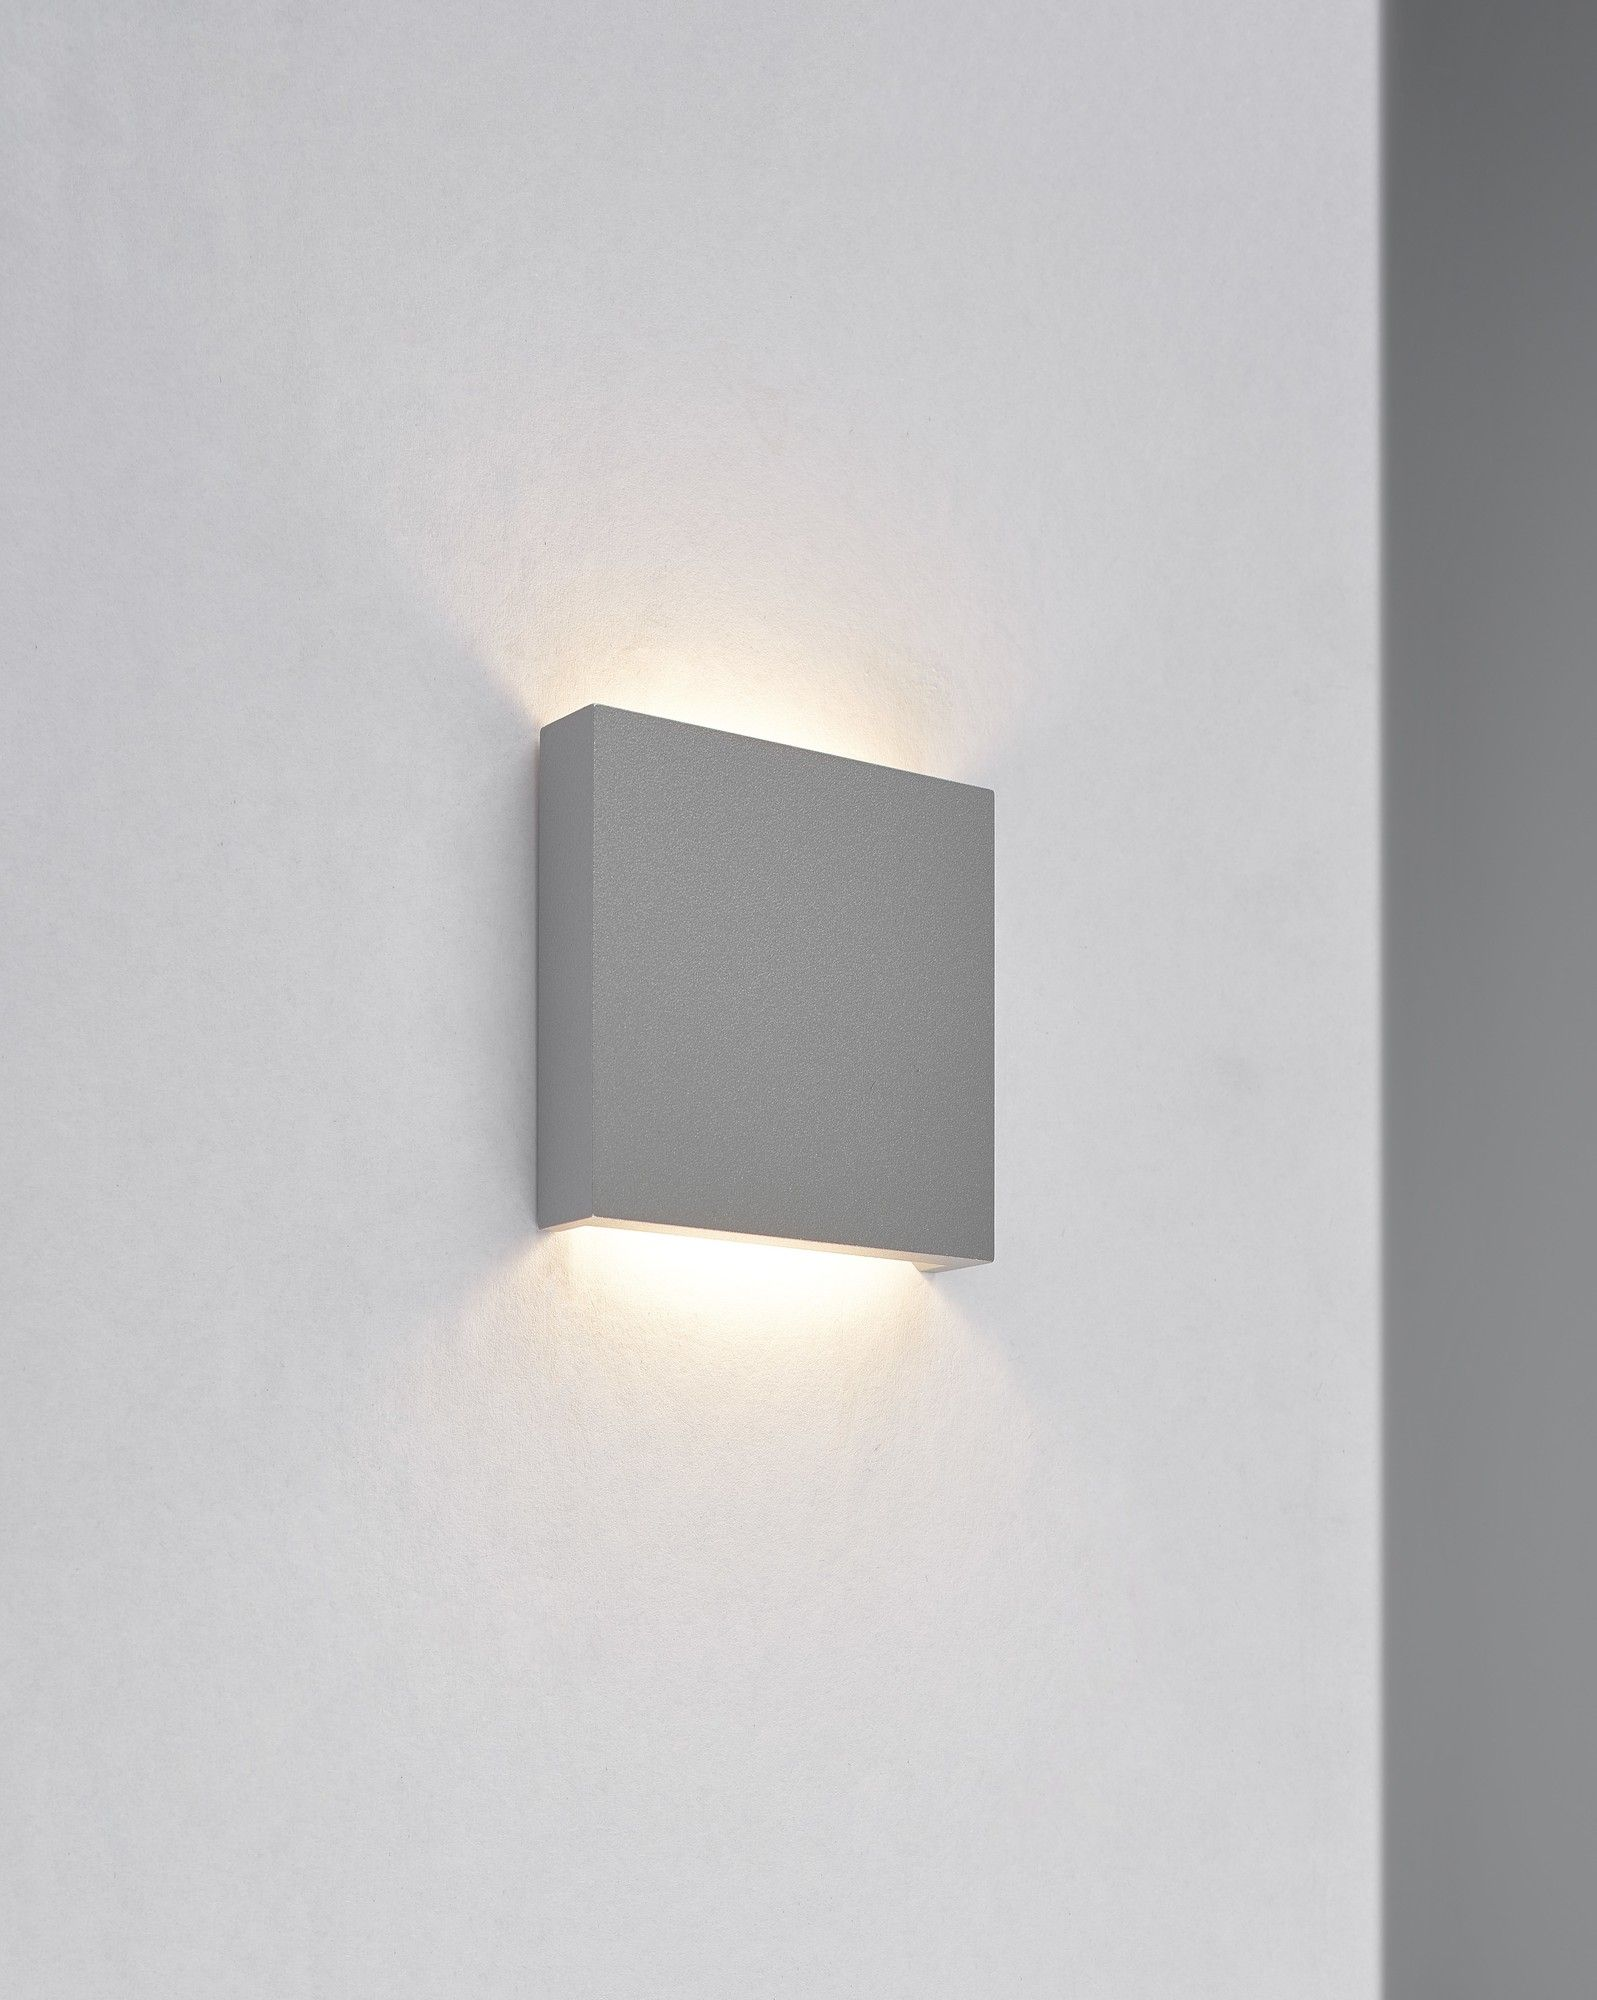 Q2 1 Light Flush Mount Led Wall Sconce Wall Sconces Wall Sconce Lighting